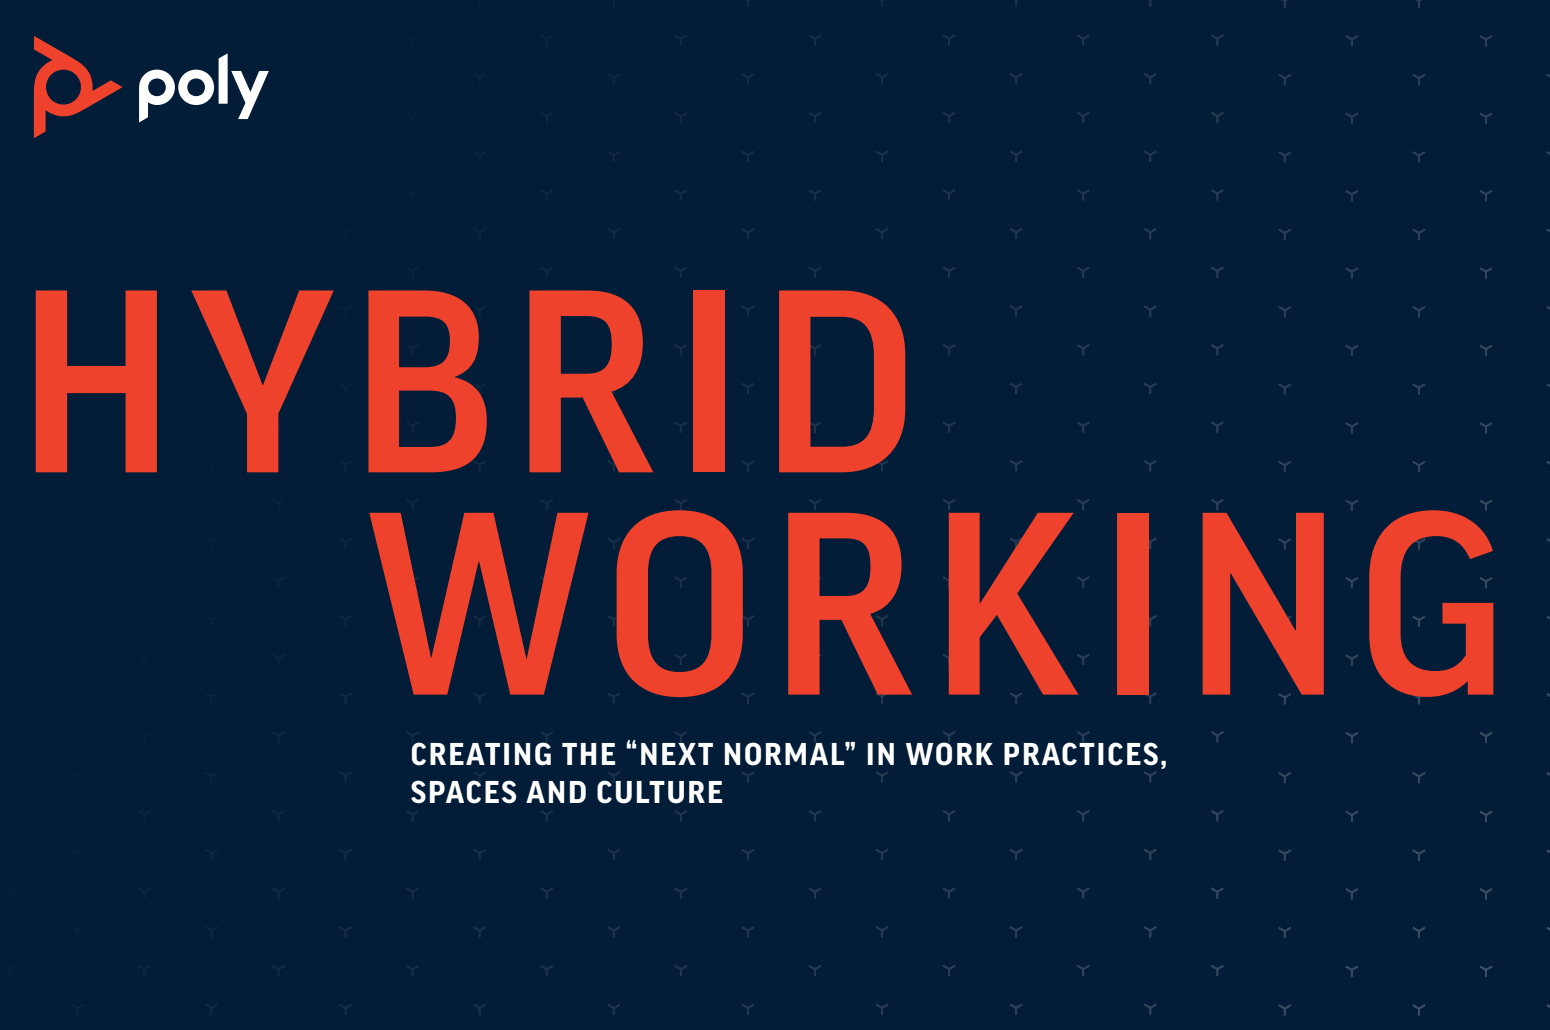 Poly Says Hybrid Working is the New Collaboration Imperative - Santa Cruz Tech Beat